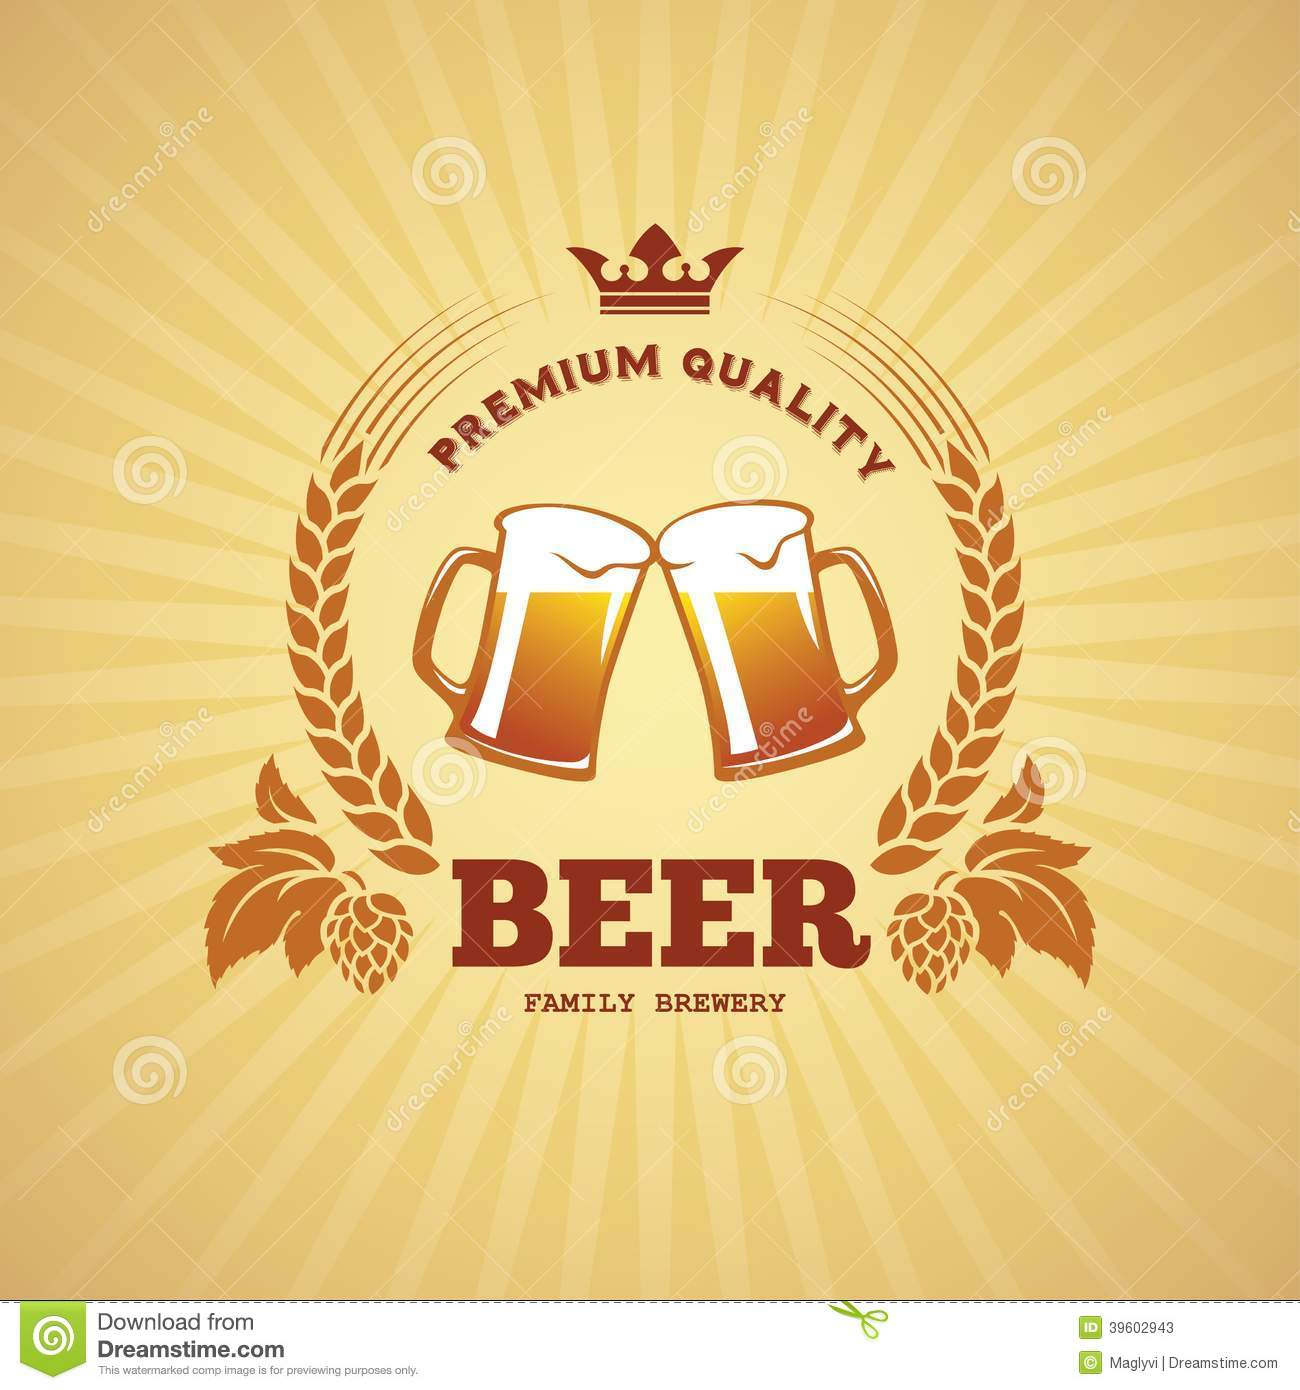 beer banner illustration 39602943 megapixl